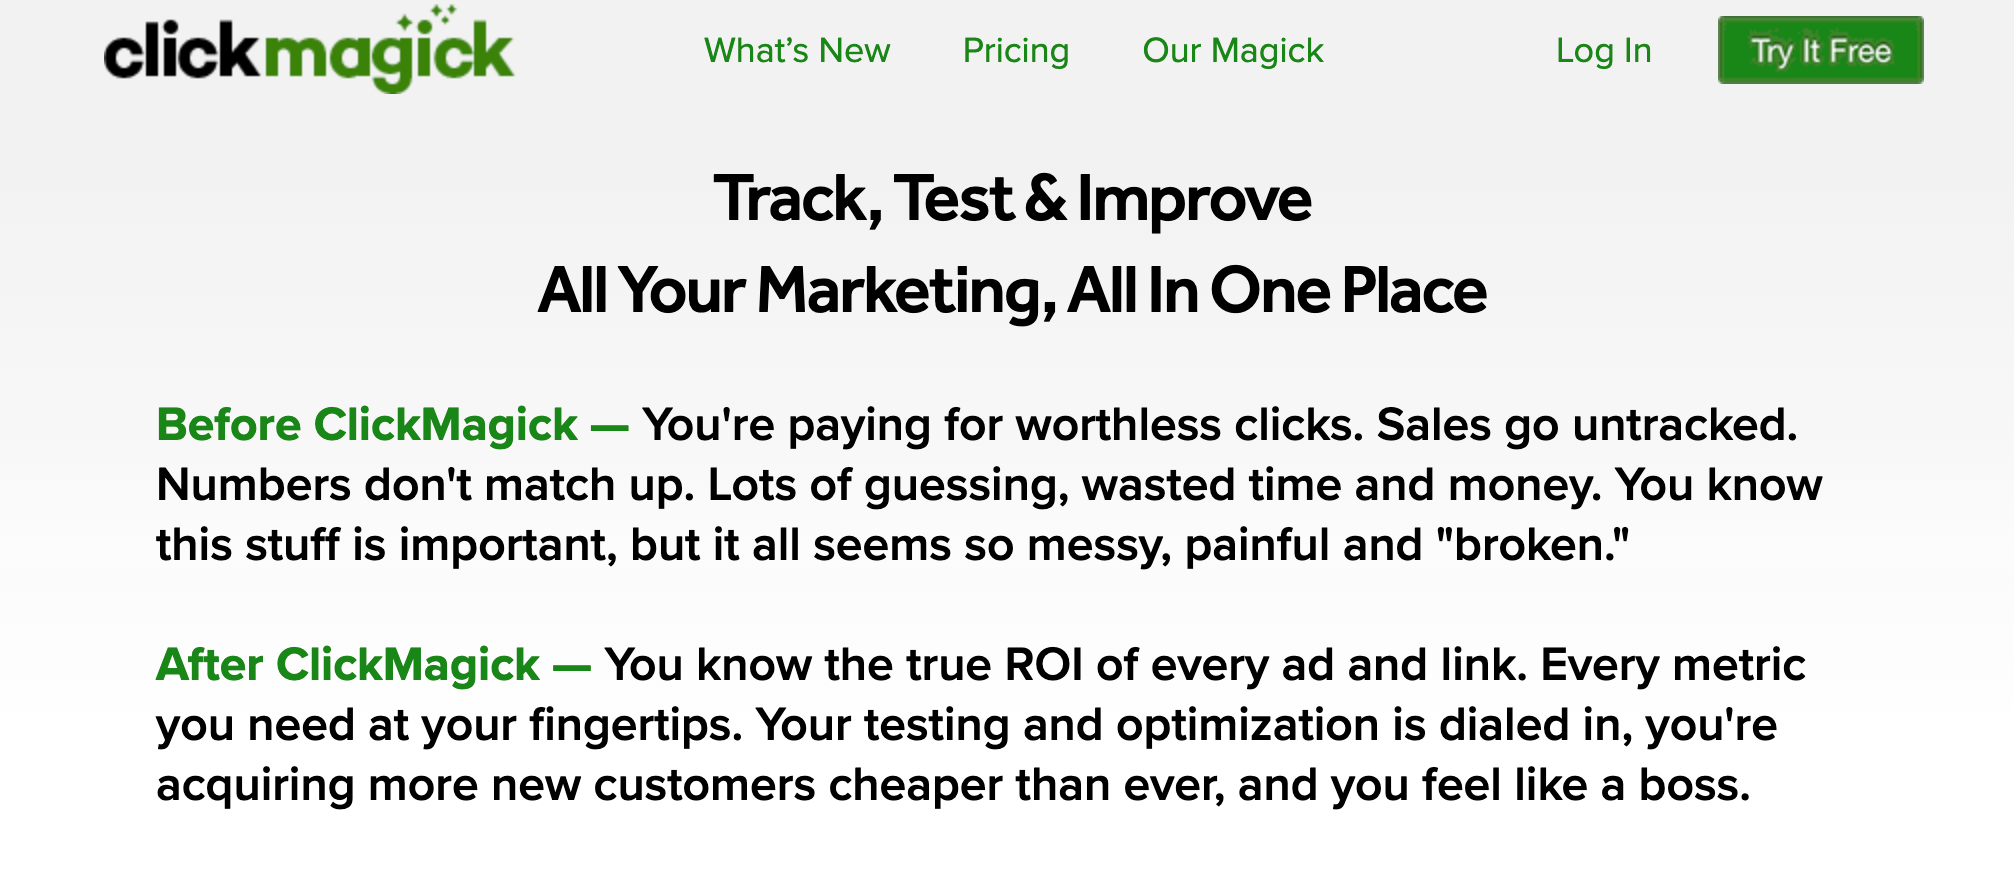 ClickMagick Affiliate Marketing Tracker